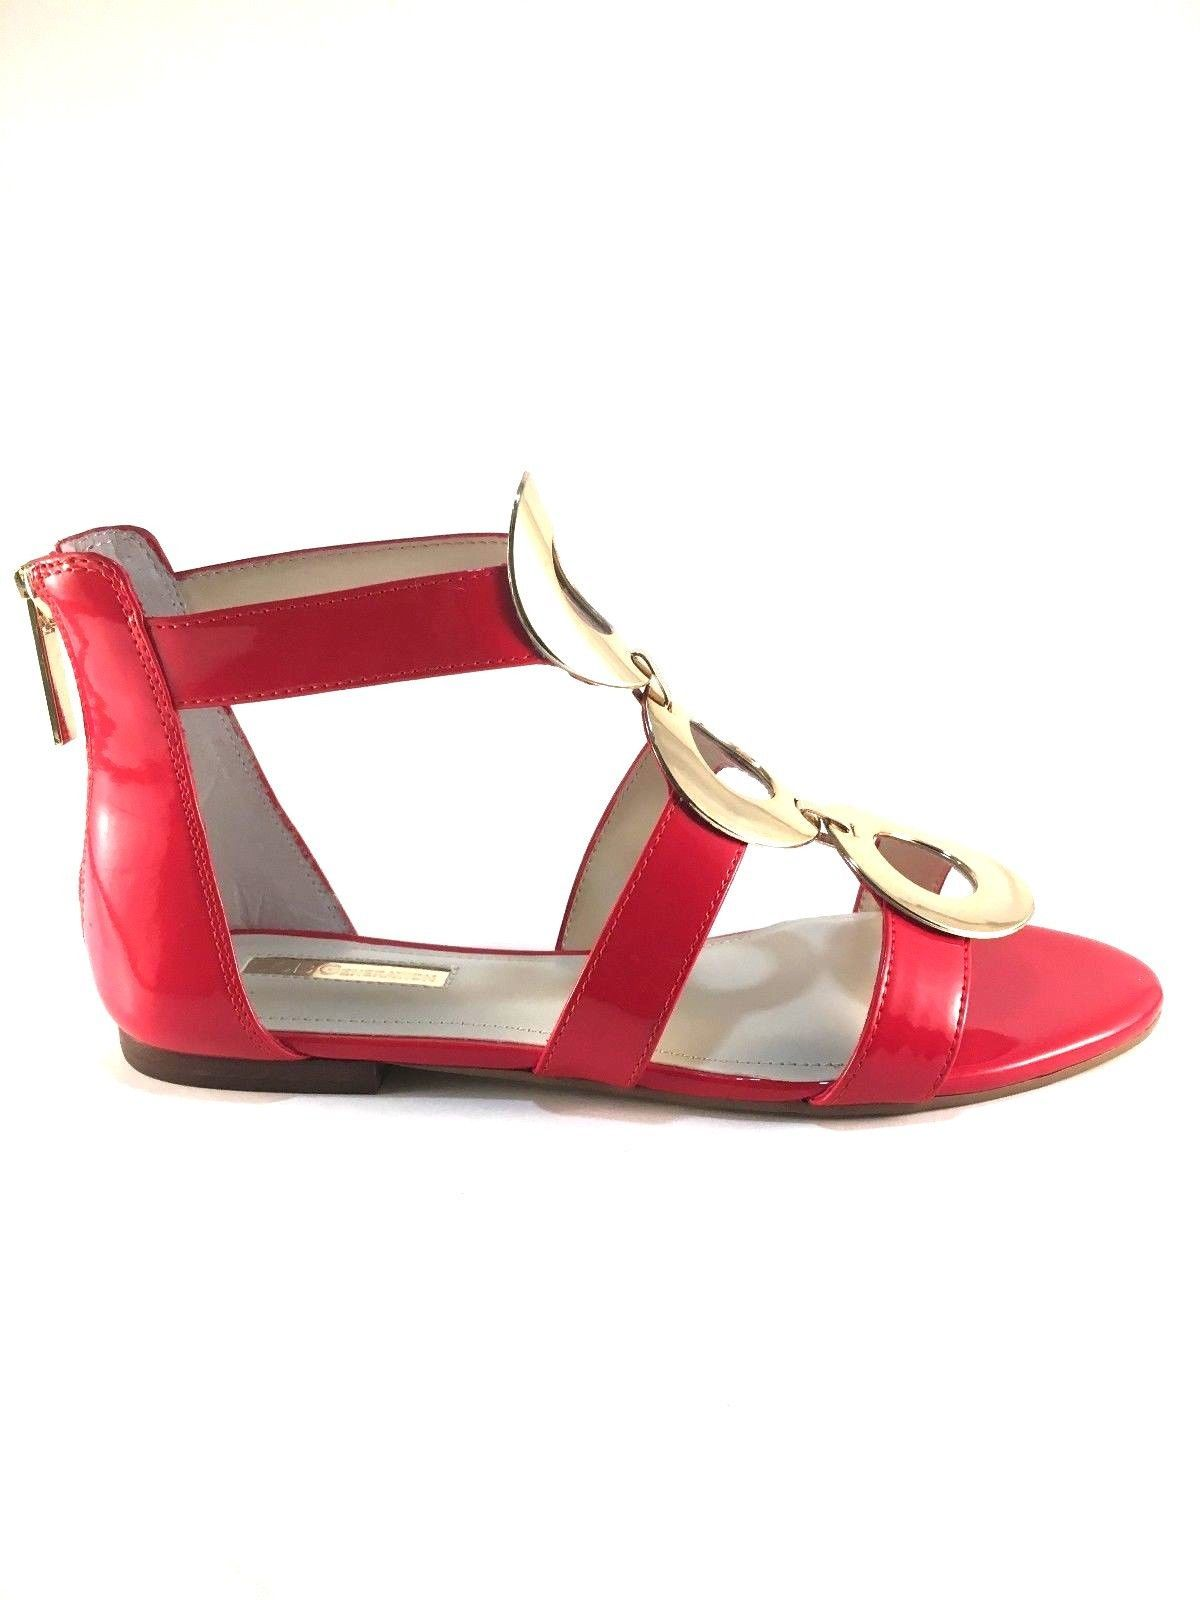 6b228d1f768 BCBGeneration Faroh Candy Red Flat Gladiator and 14 similar items